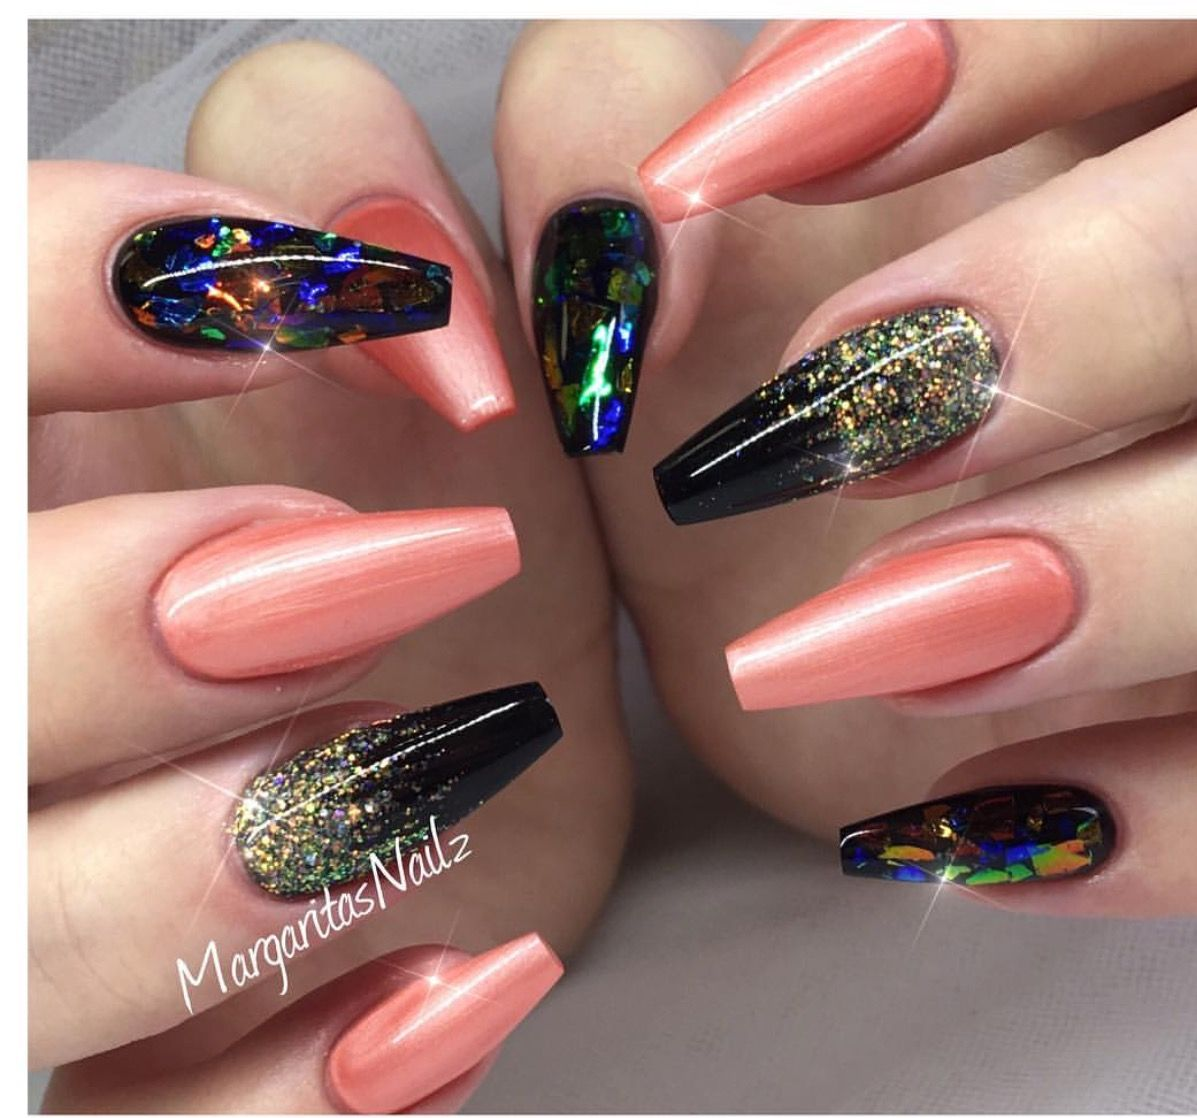 Pin by IT\'S A PLUSH WORLD on Lux Nails. | Pinterest | Lux nails ...